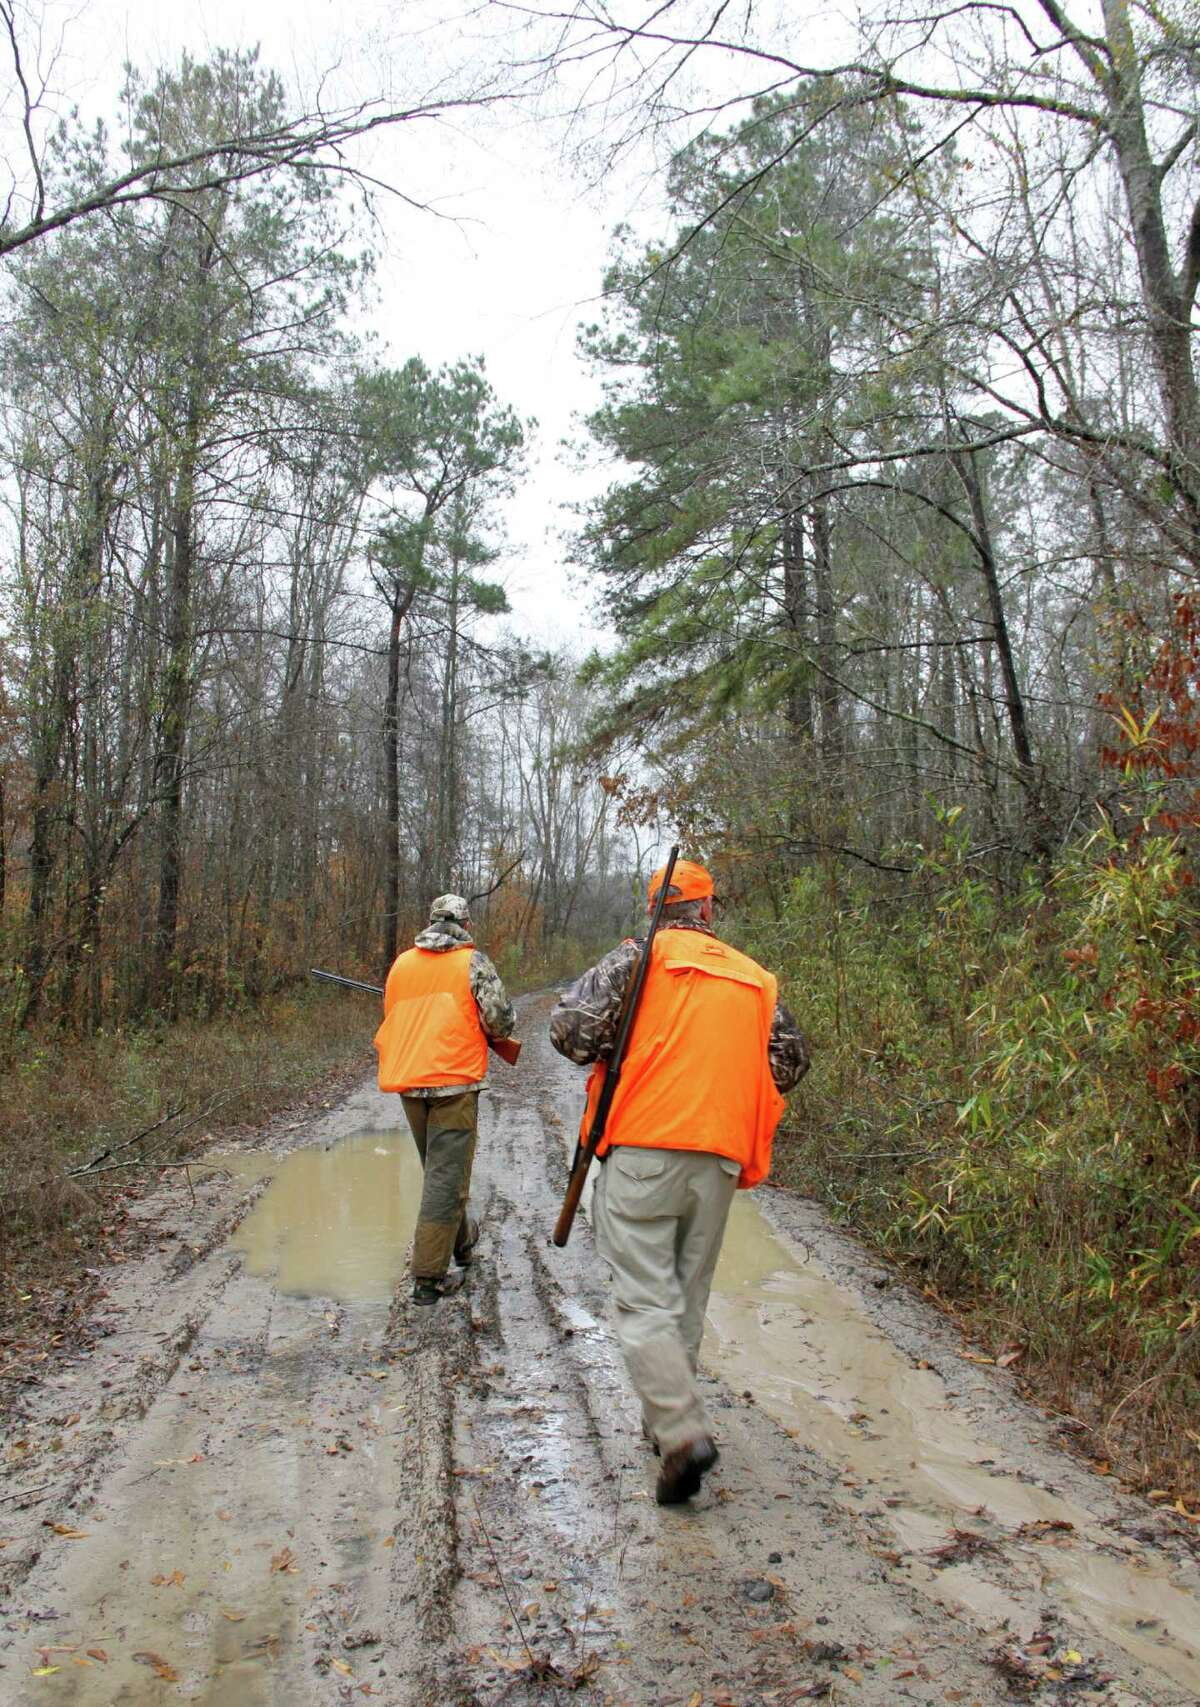 A pair of hunters walks along a sandy lane through a patch of East Texas forest holding woodcock. The woodland birds sometimes search for worms, their main food source, along these roads during night or at dawn and suck, then retreat into the adjacent woods to spend the day.